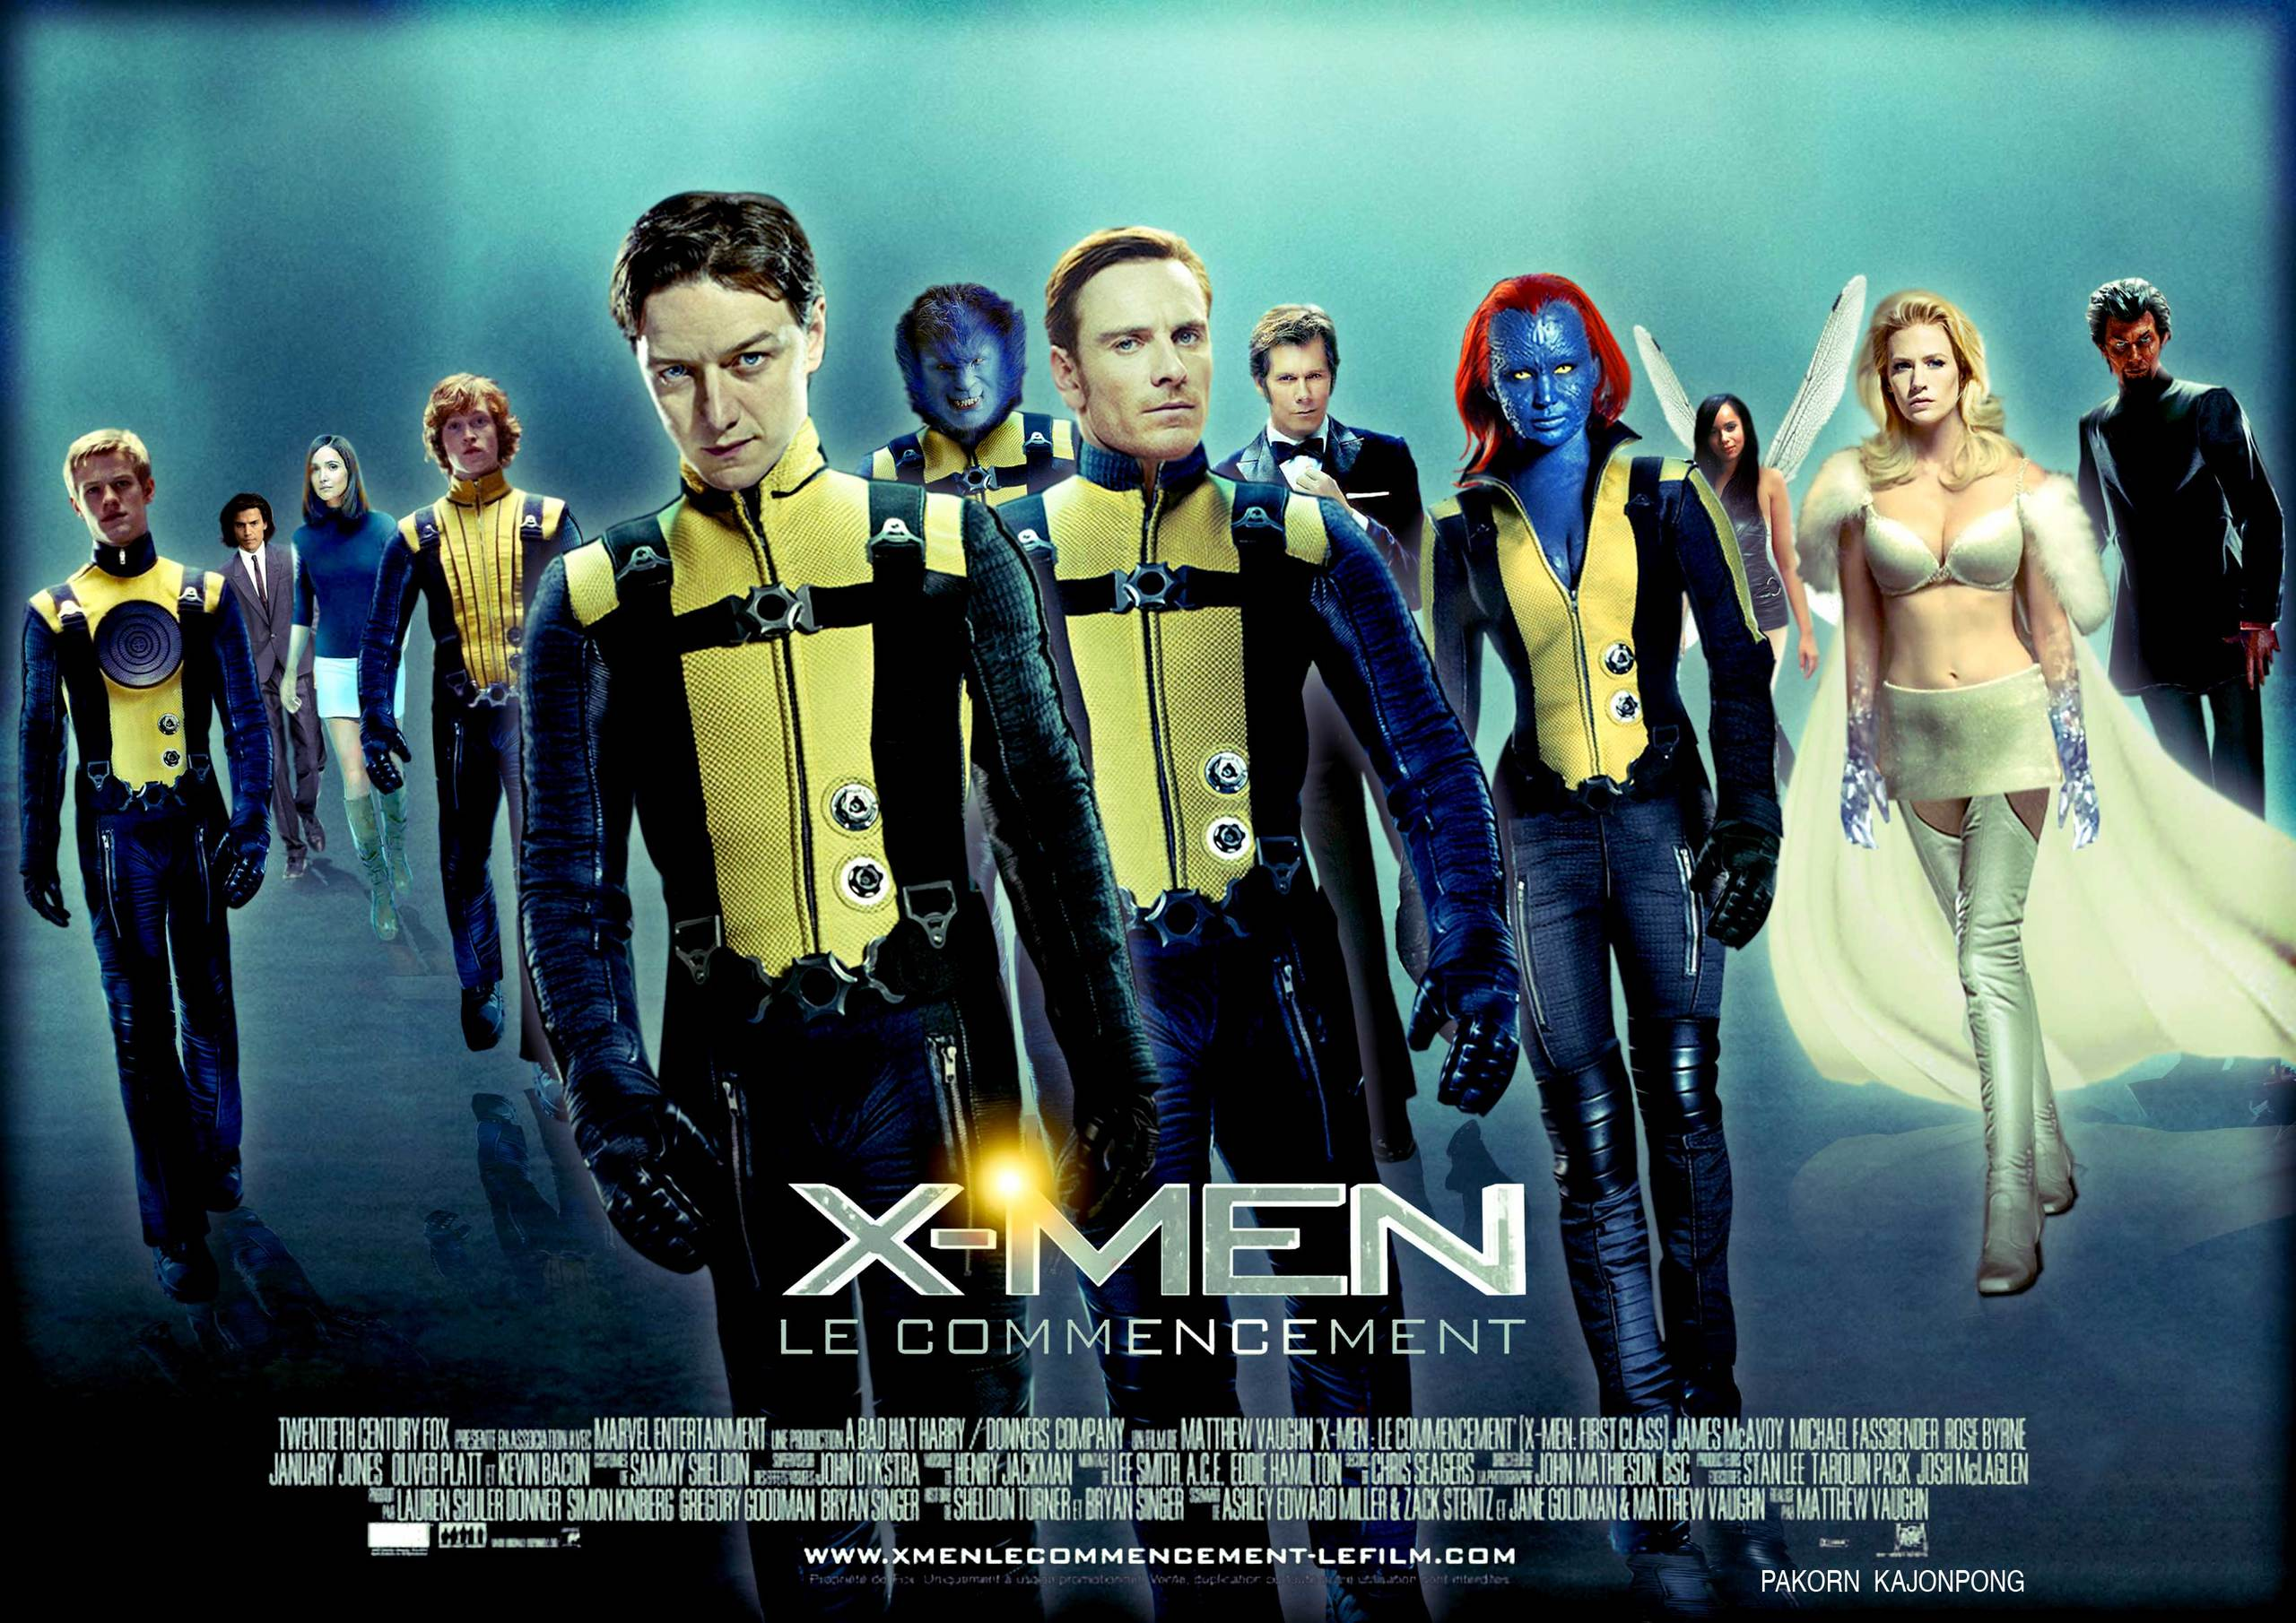 Pakorn-x-men-first-class-25197968-2560-1810